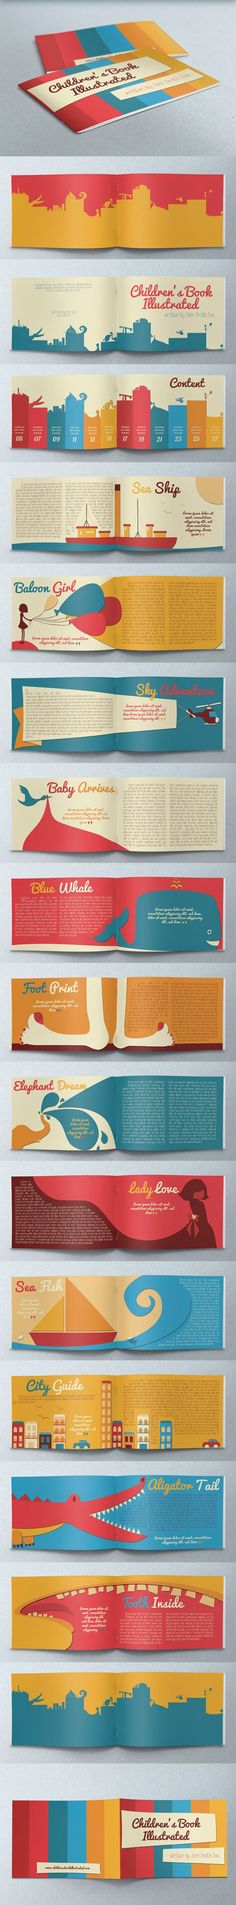 Fantastic Children's Book Illustrated #infographics